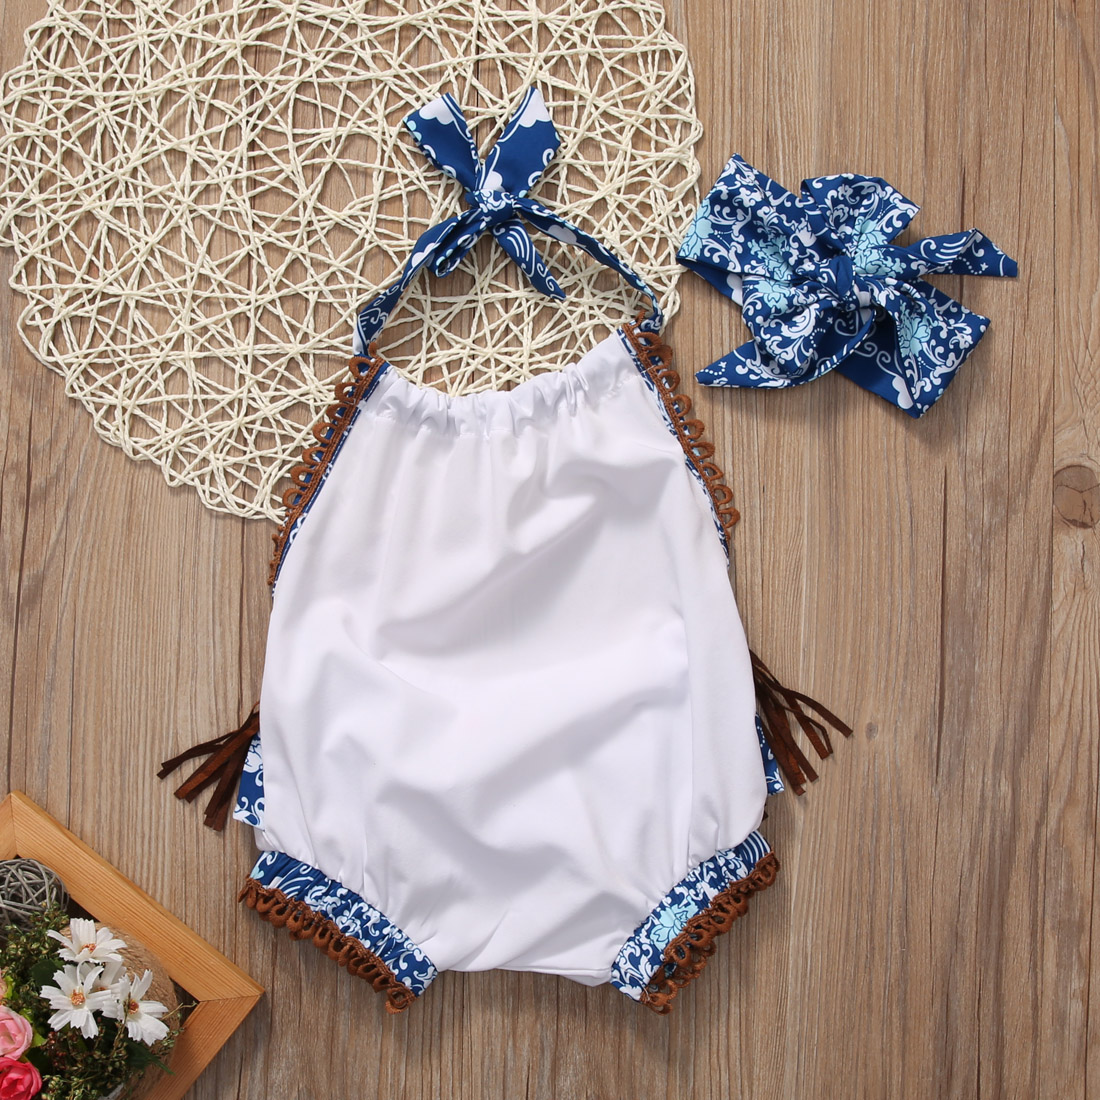 2pcs Baby Set Newborn Baby Girl Clothes Summer Cotton Sleeveless Floral Tassels Backless Romper+Headband Outfit Set Clothes 3pcs mini mermaid newborn baby girl clothes 2017 summer short sleeve cotton romper bodysuit sea maid bottom outfit clothing set